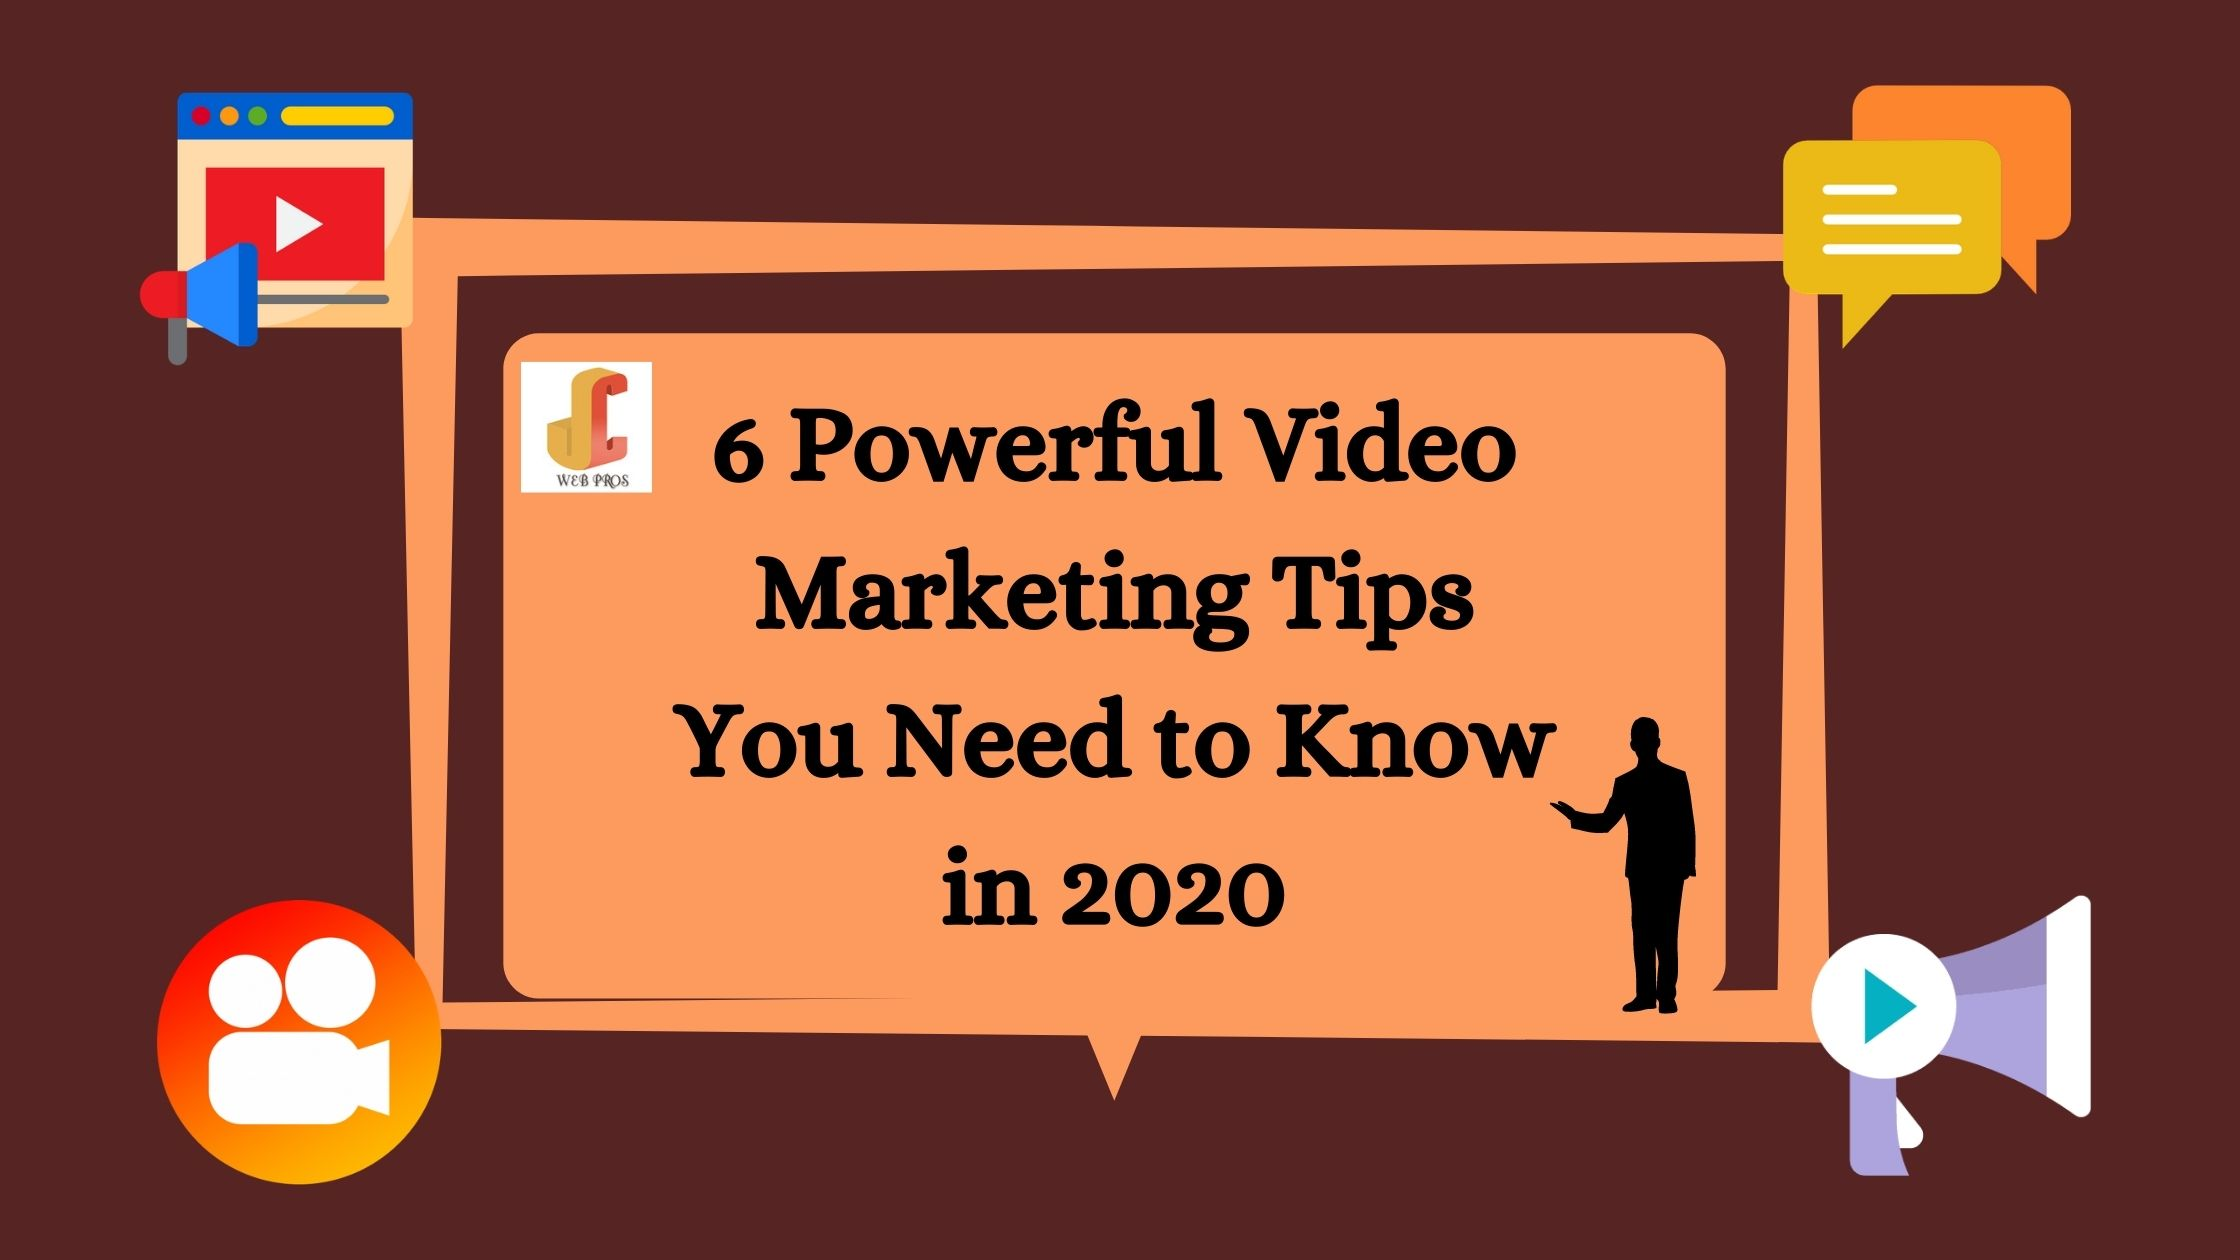 6 Powerful Video Marketing Tips You Need to Know